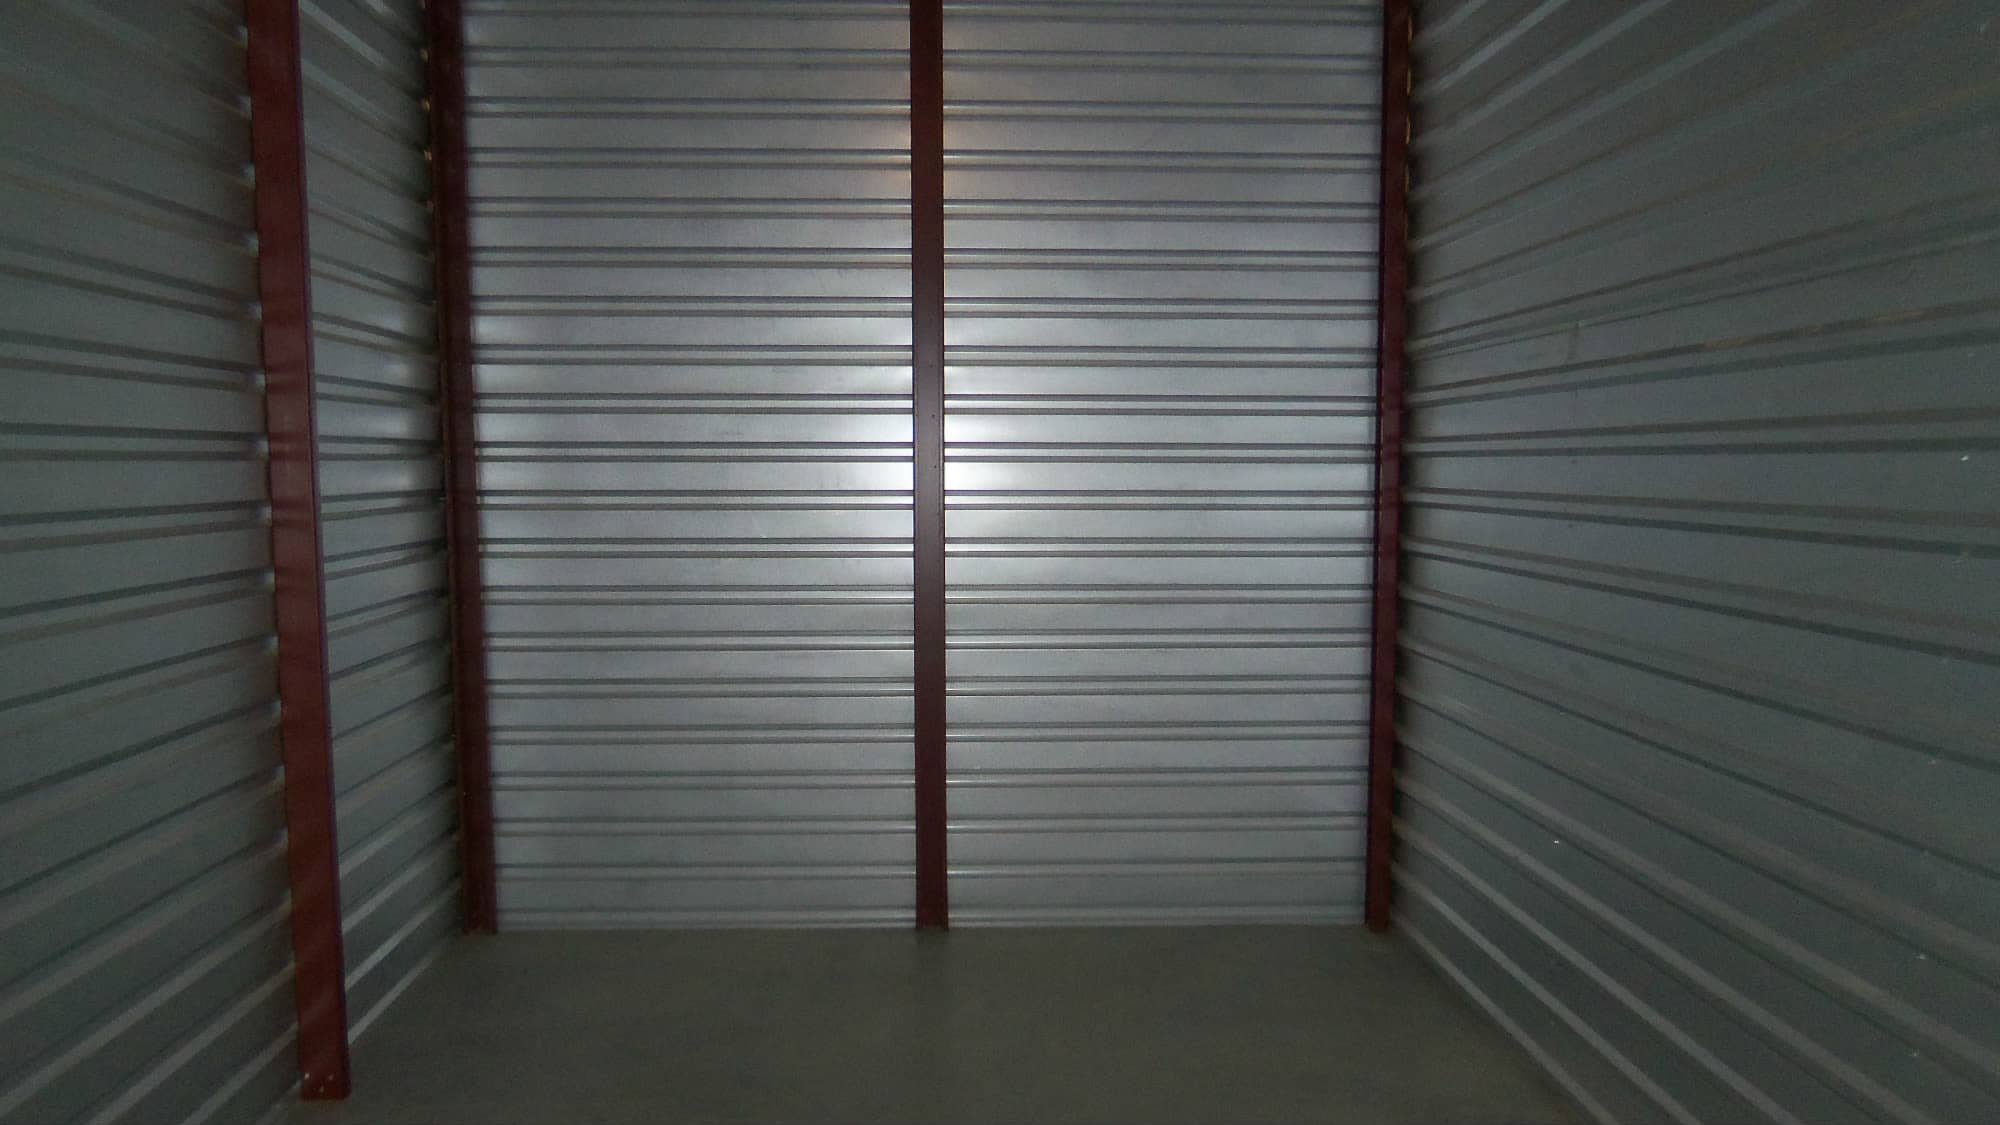 Interior view of a unit at Self Storage Plus in Walkersville, MD